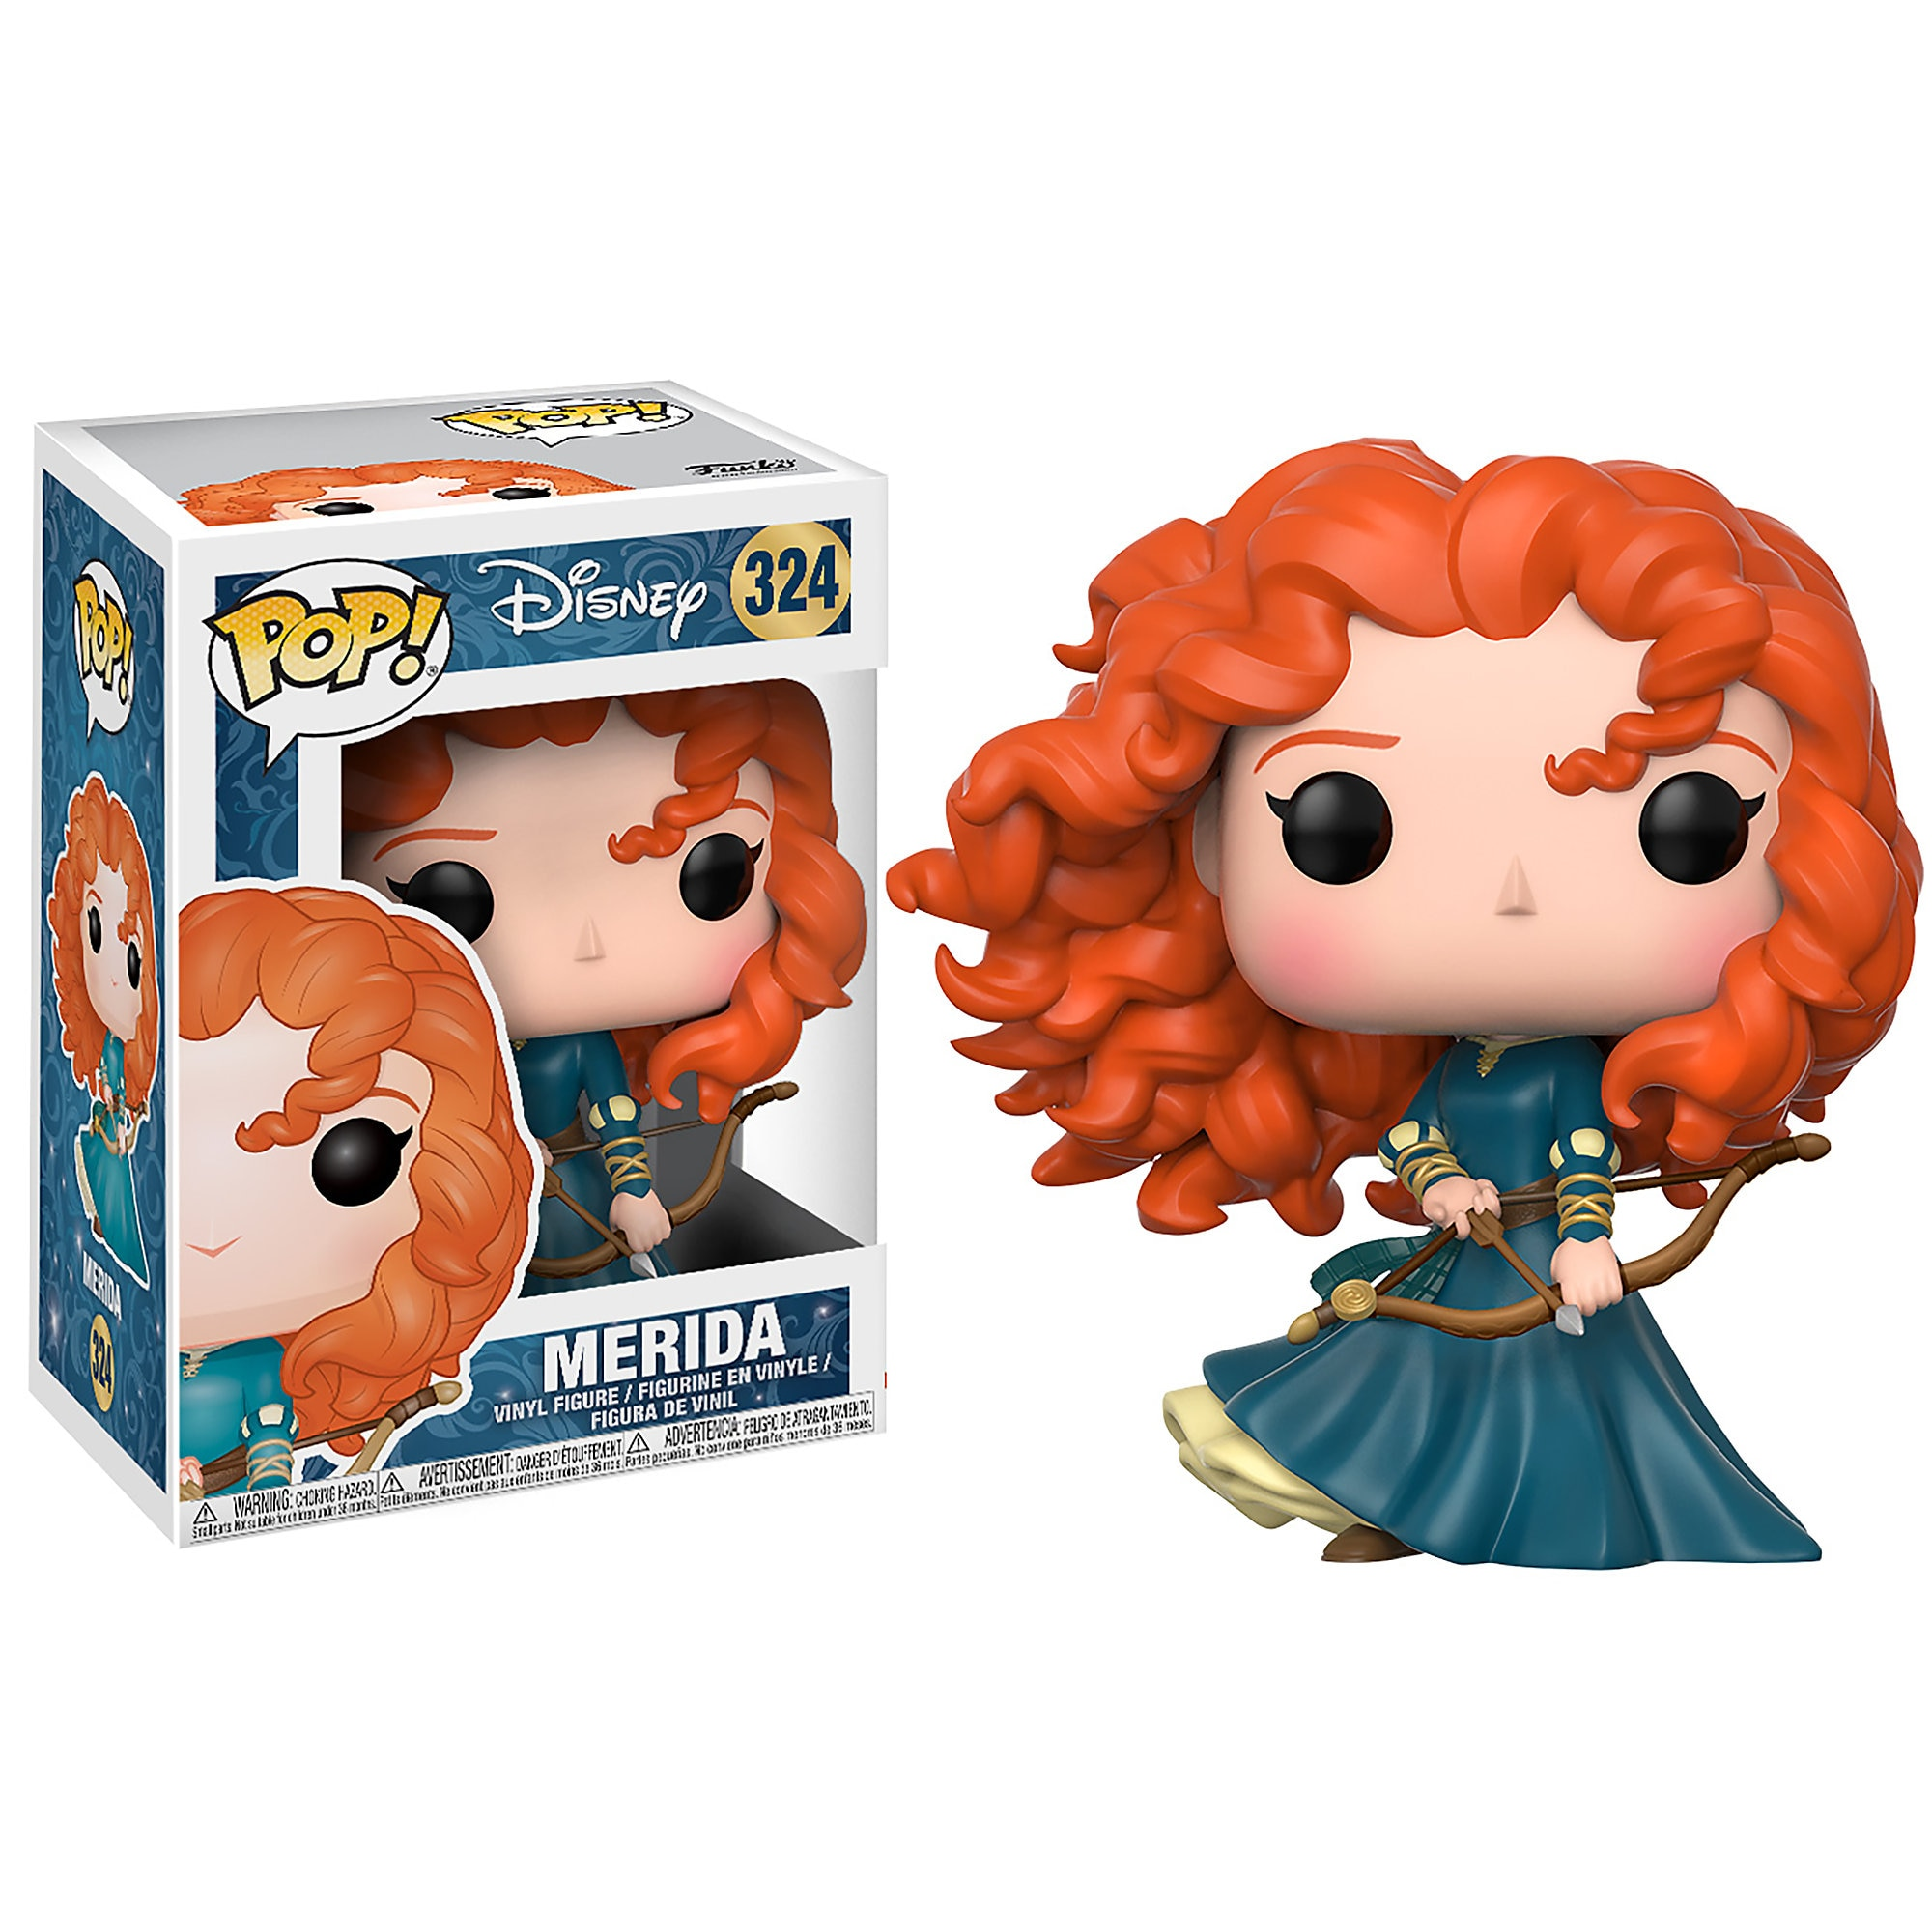 Merida Pop! Vinyl Figure - Brave - Funko